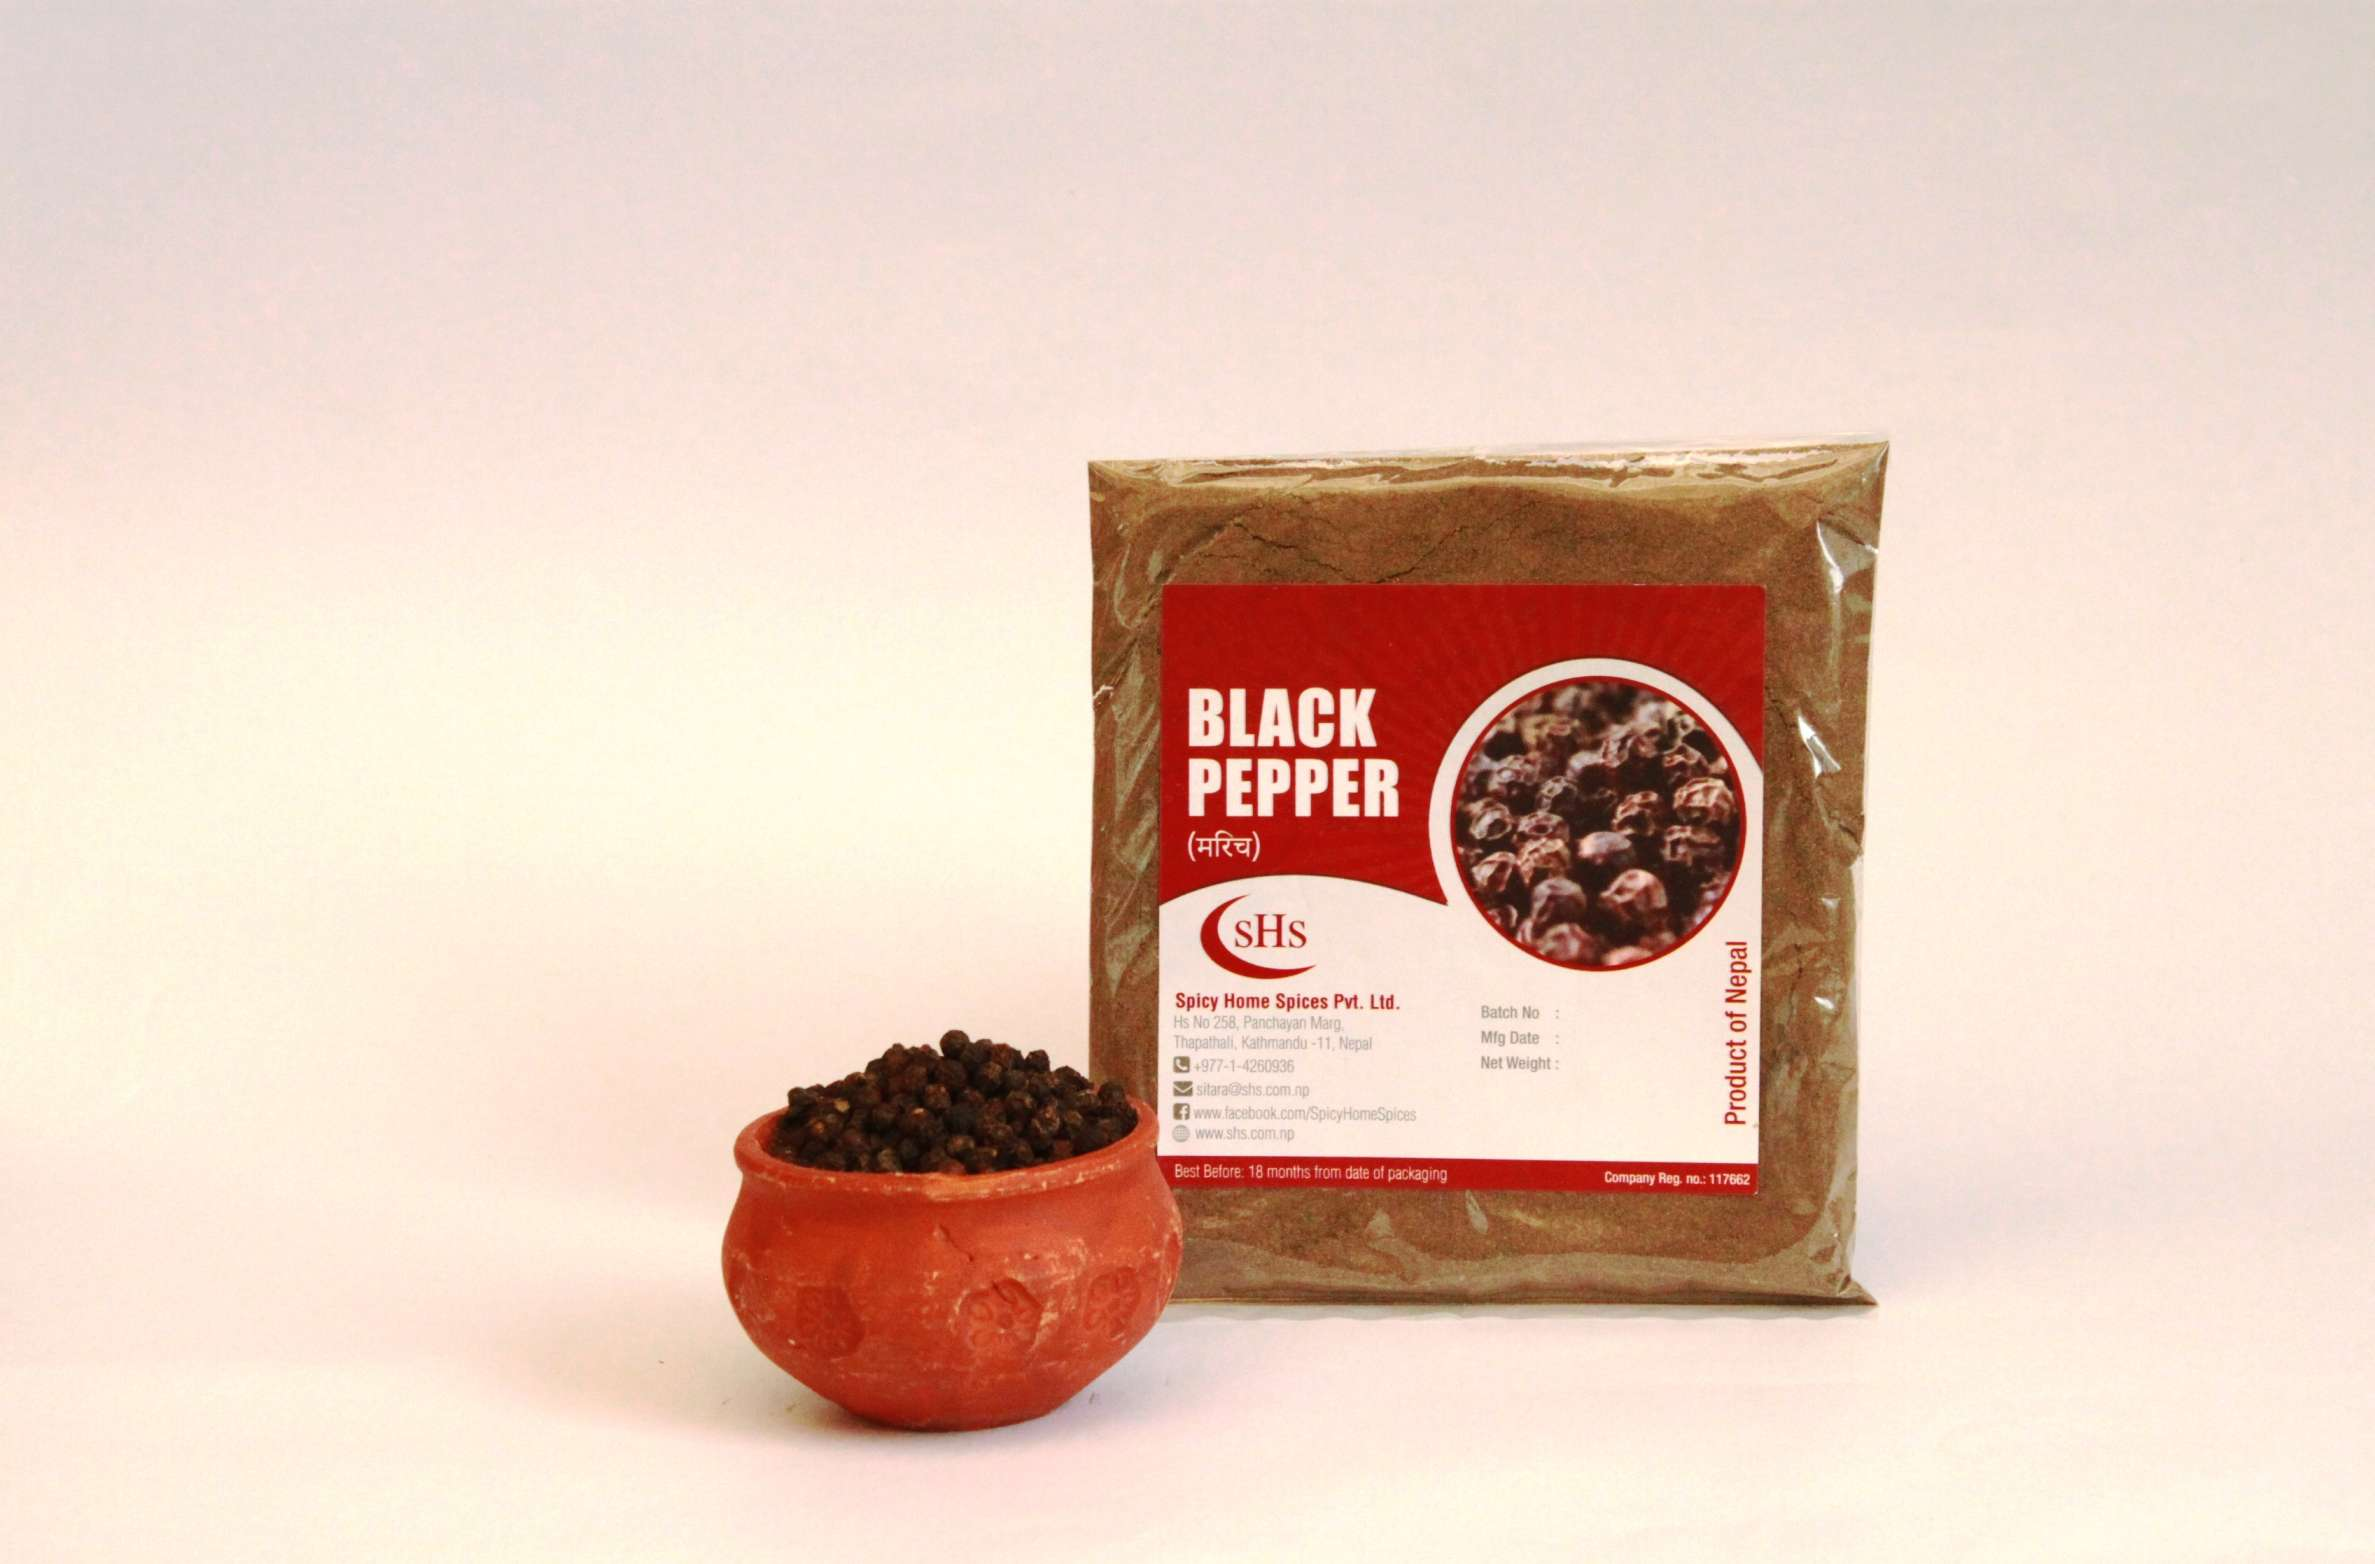 Black Pepper (Marich)